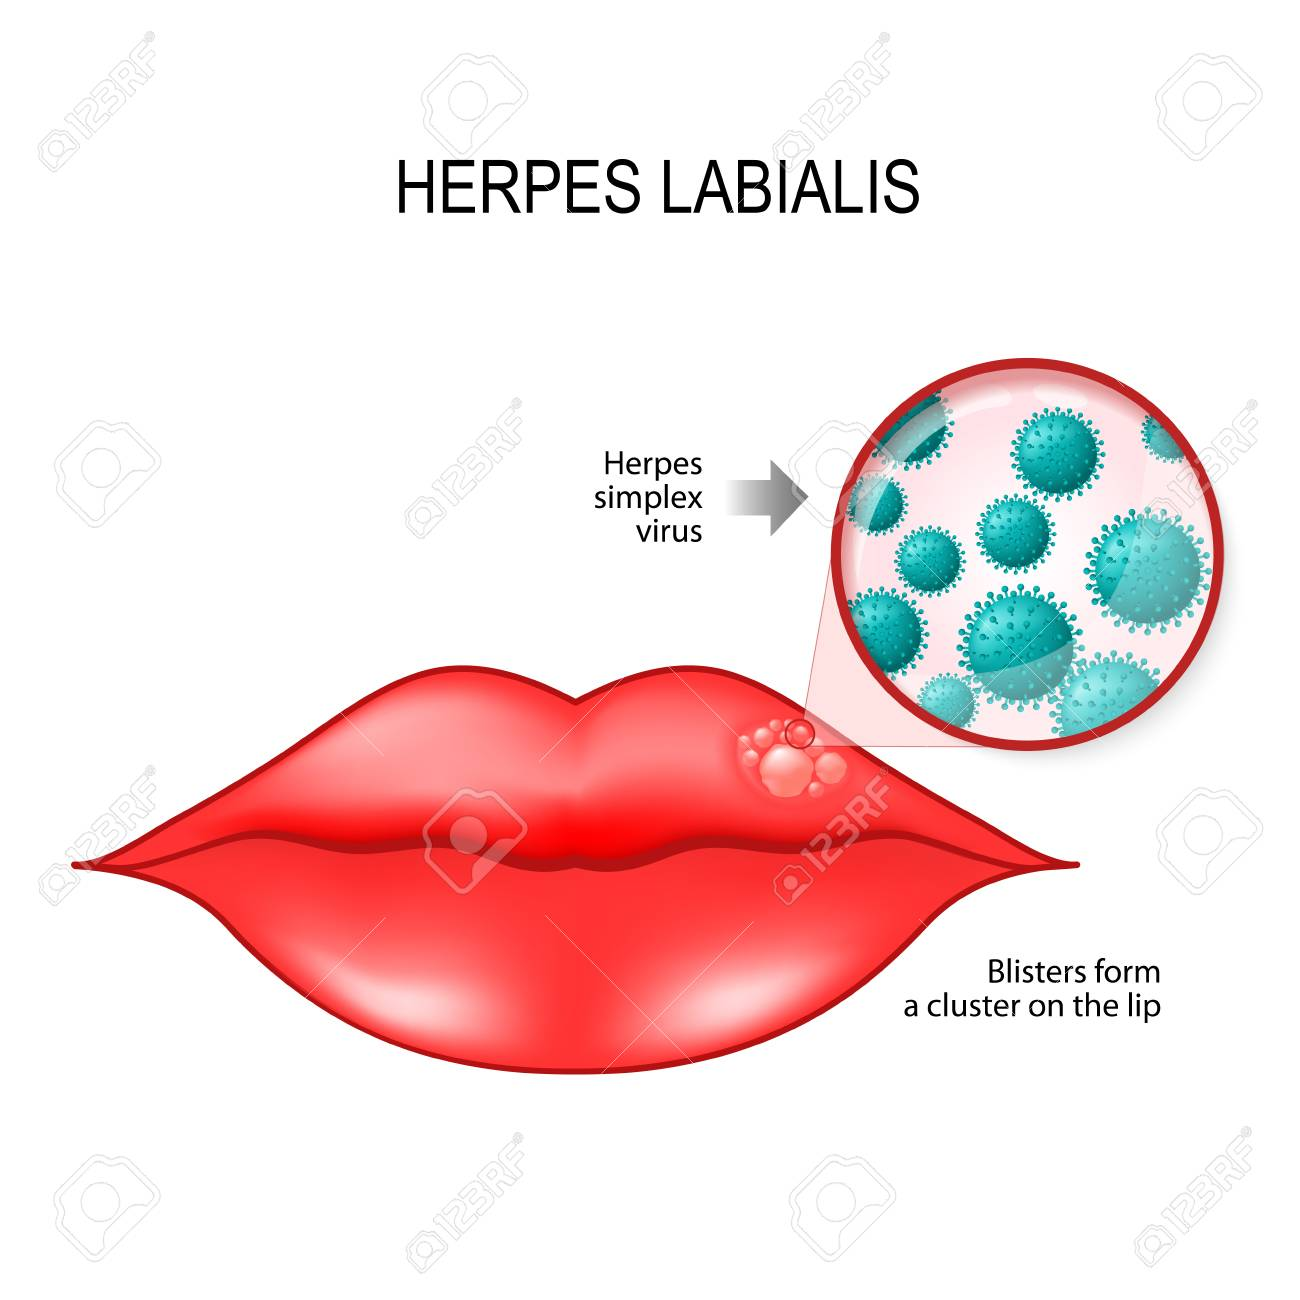 Herpes labialis (blisters) on the lip  cause is herpes simplex